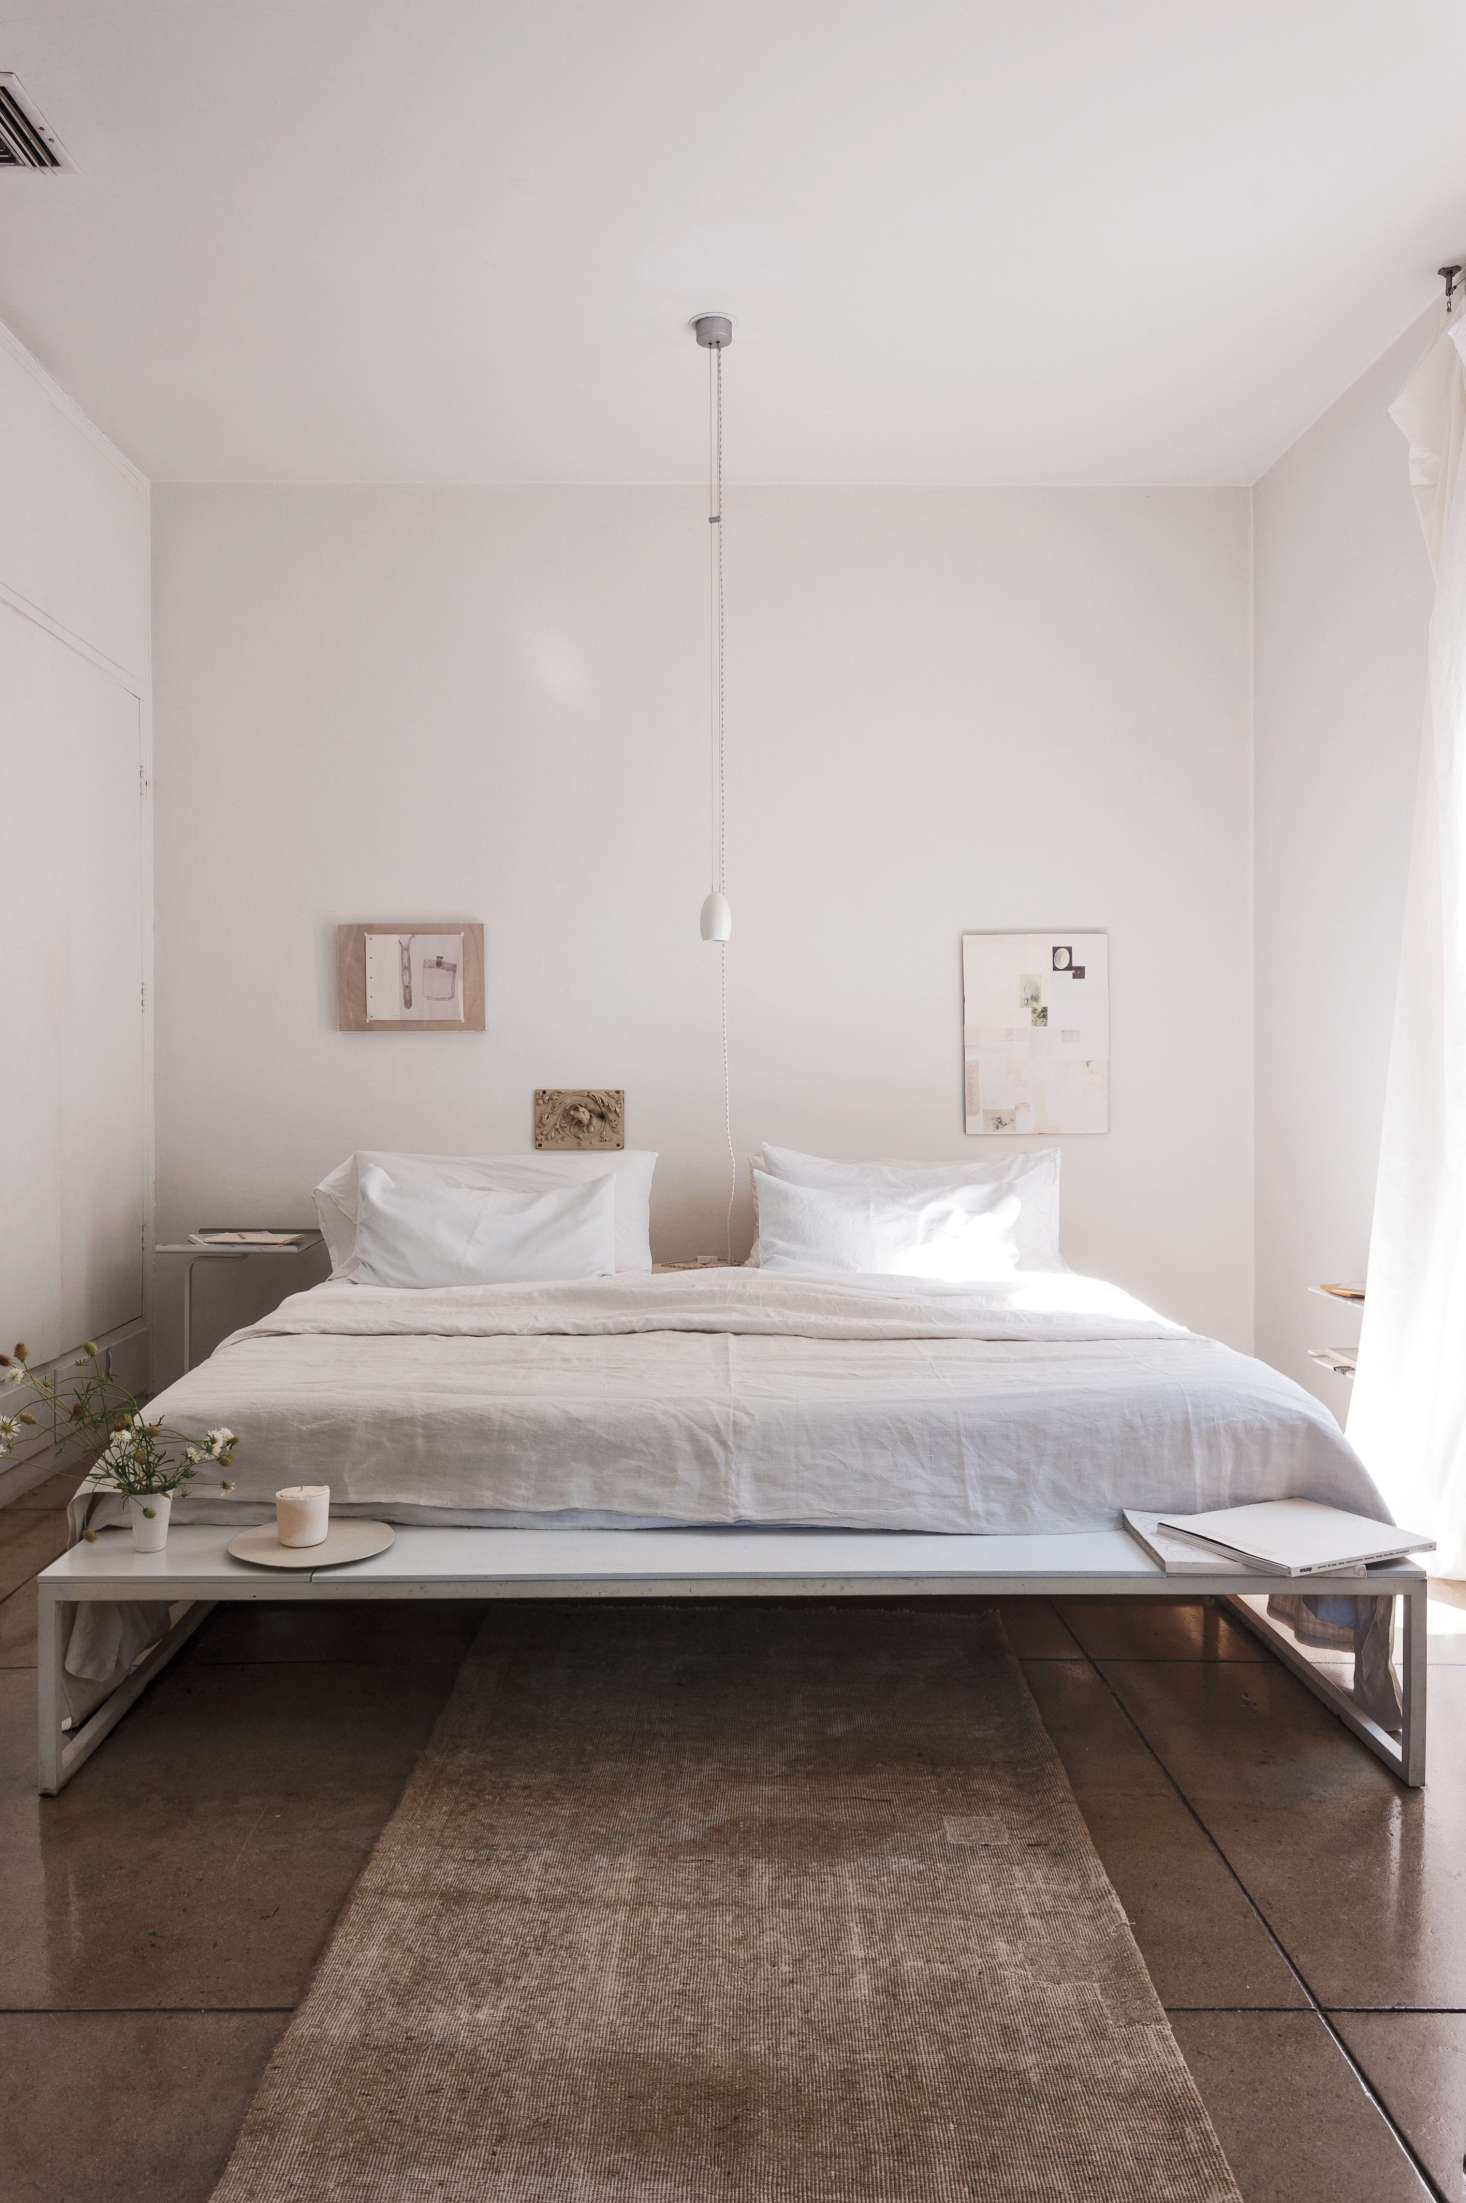 Expert Advice: How To Make a Small Bedroom Look Bigger